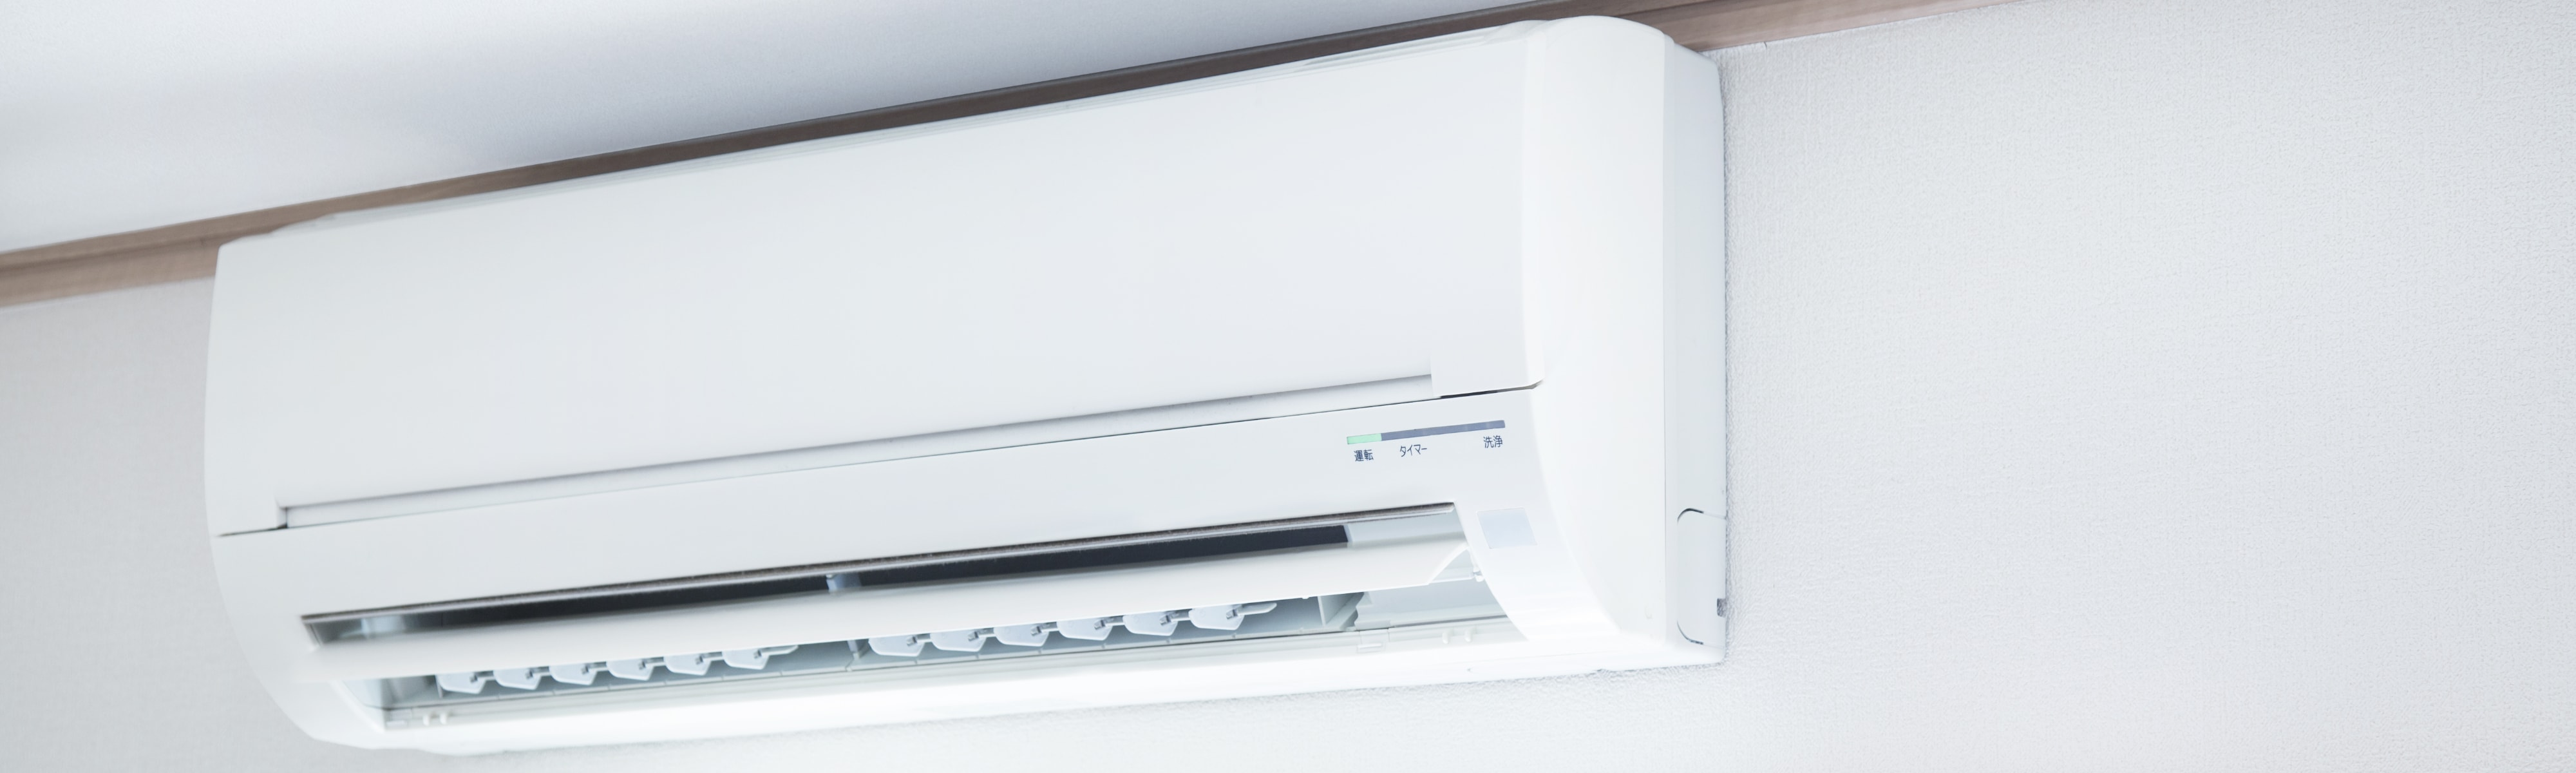 Wall-mounted ductless air conditioner.